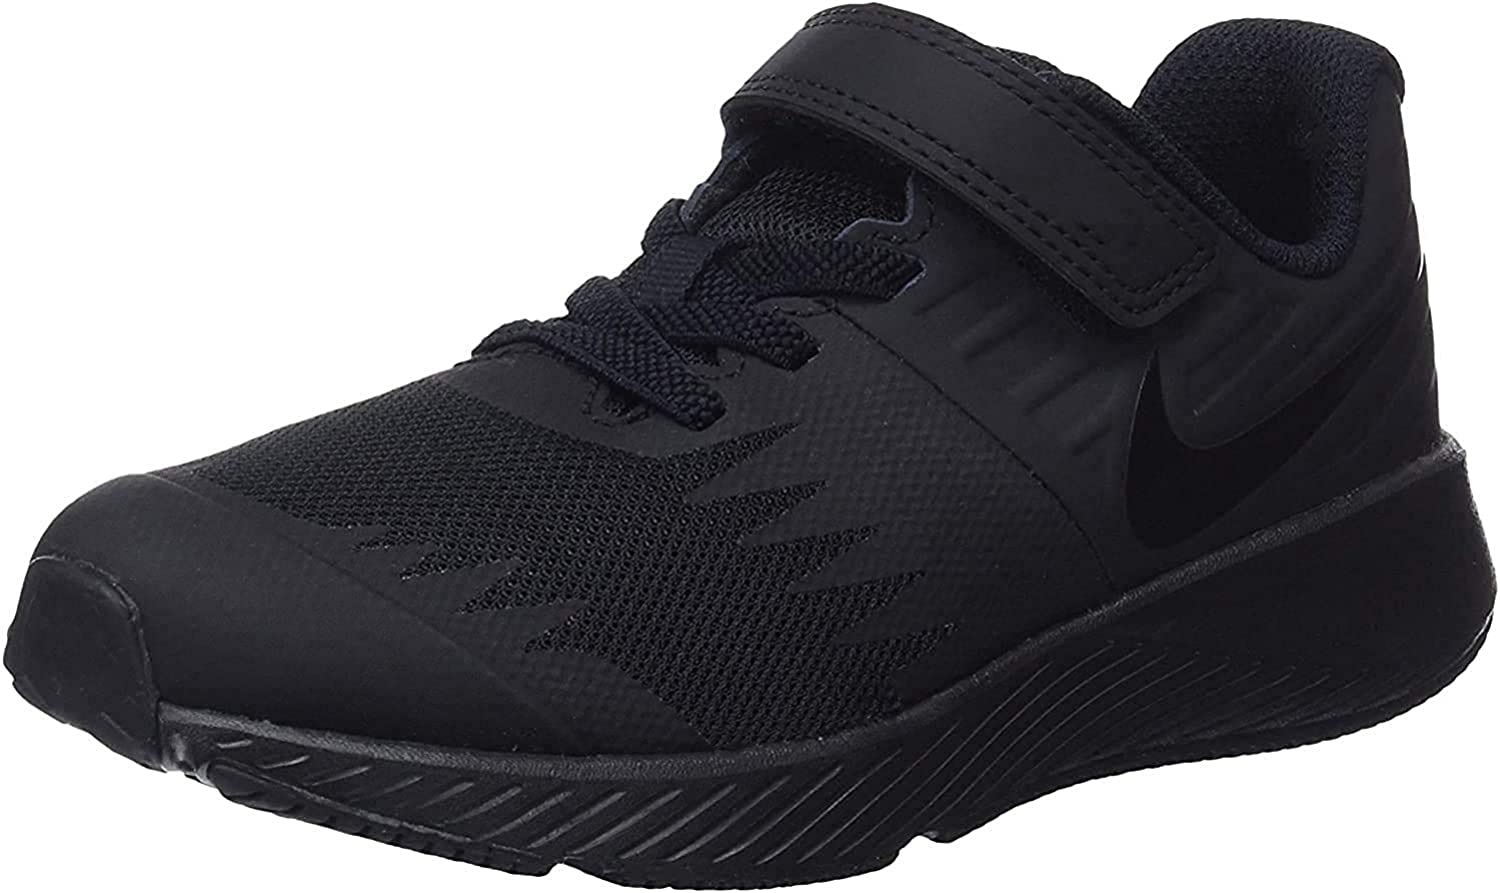 Black//Black Sneakers Nike 921443-005: Big Kids Star Runner 12 M Little Kid PSV